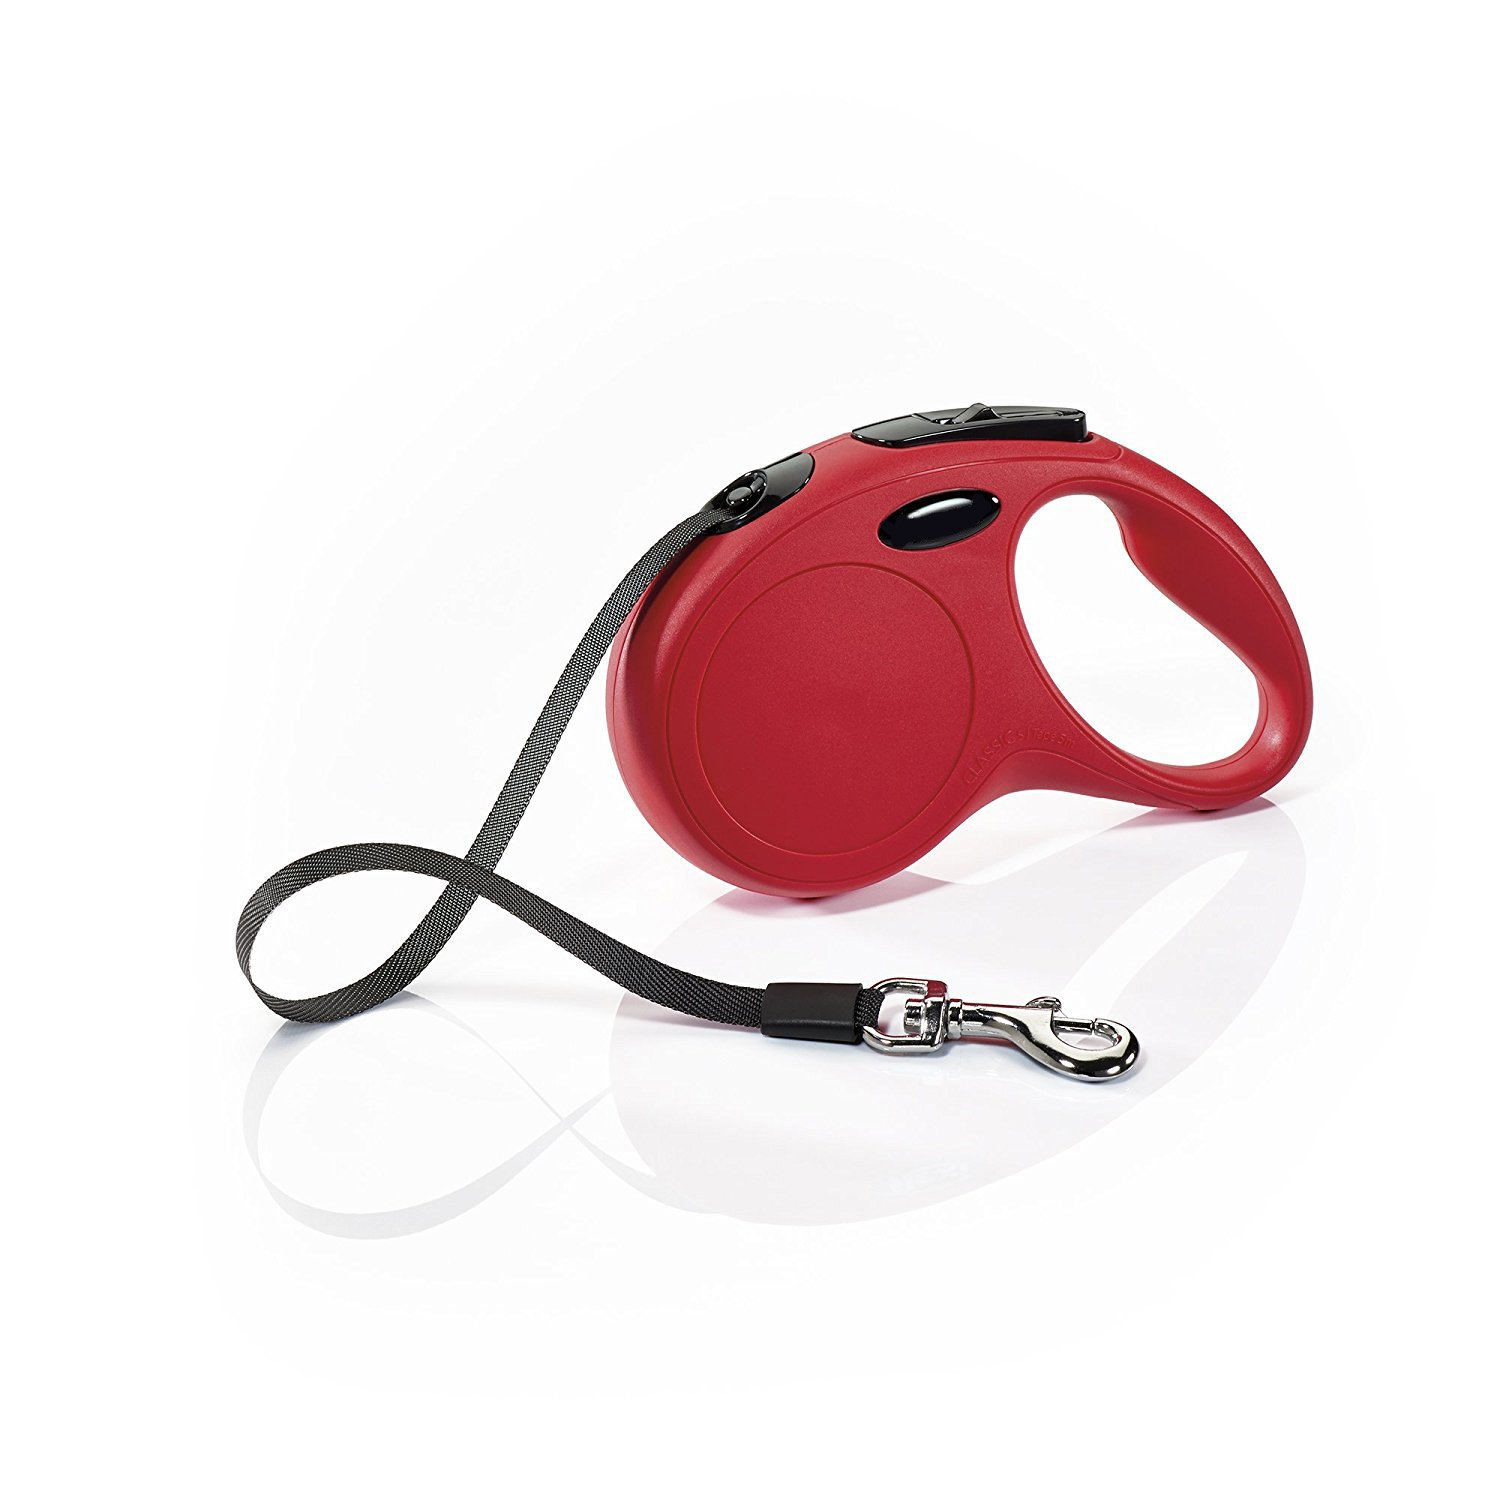 Red M.E.R.A. New Classic Tape Leash for Your Pet, Your Pretty Pet Will Like It, For Dogs (Red)